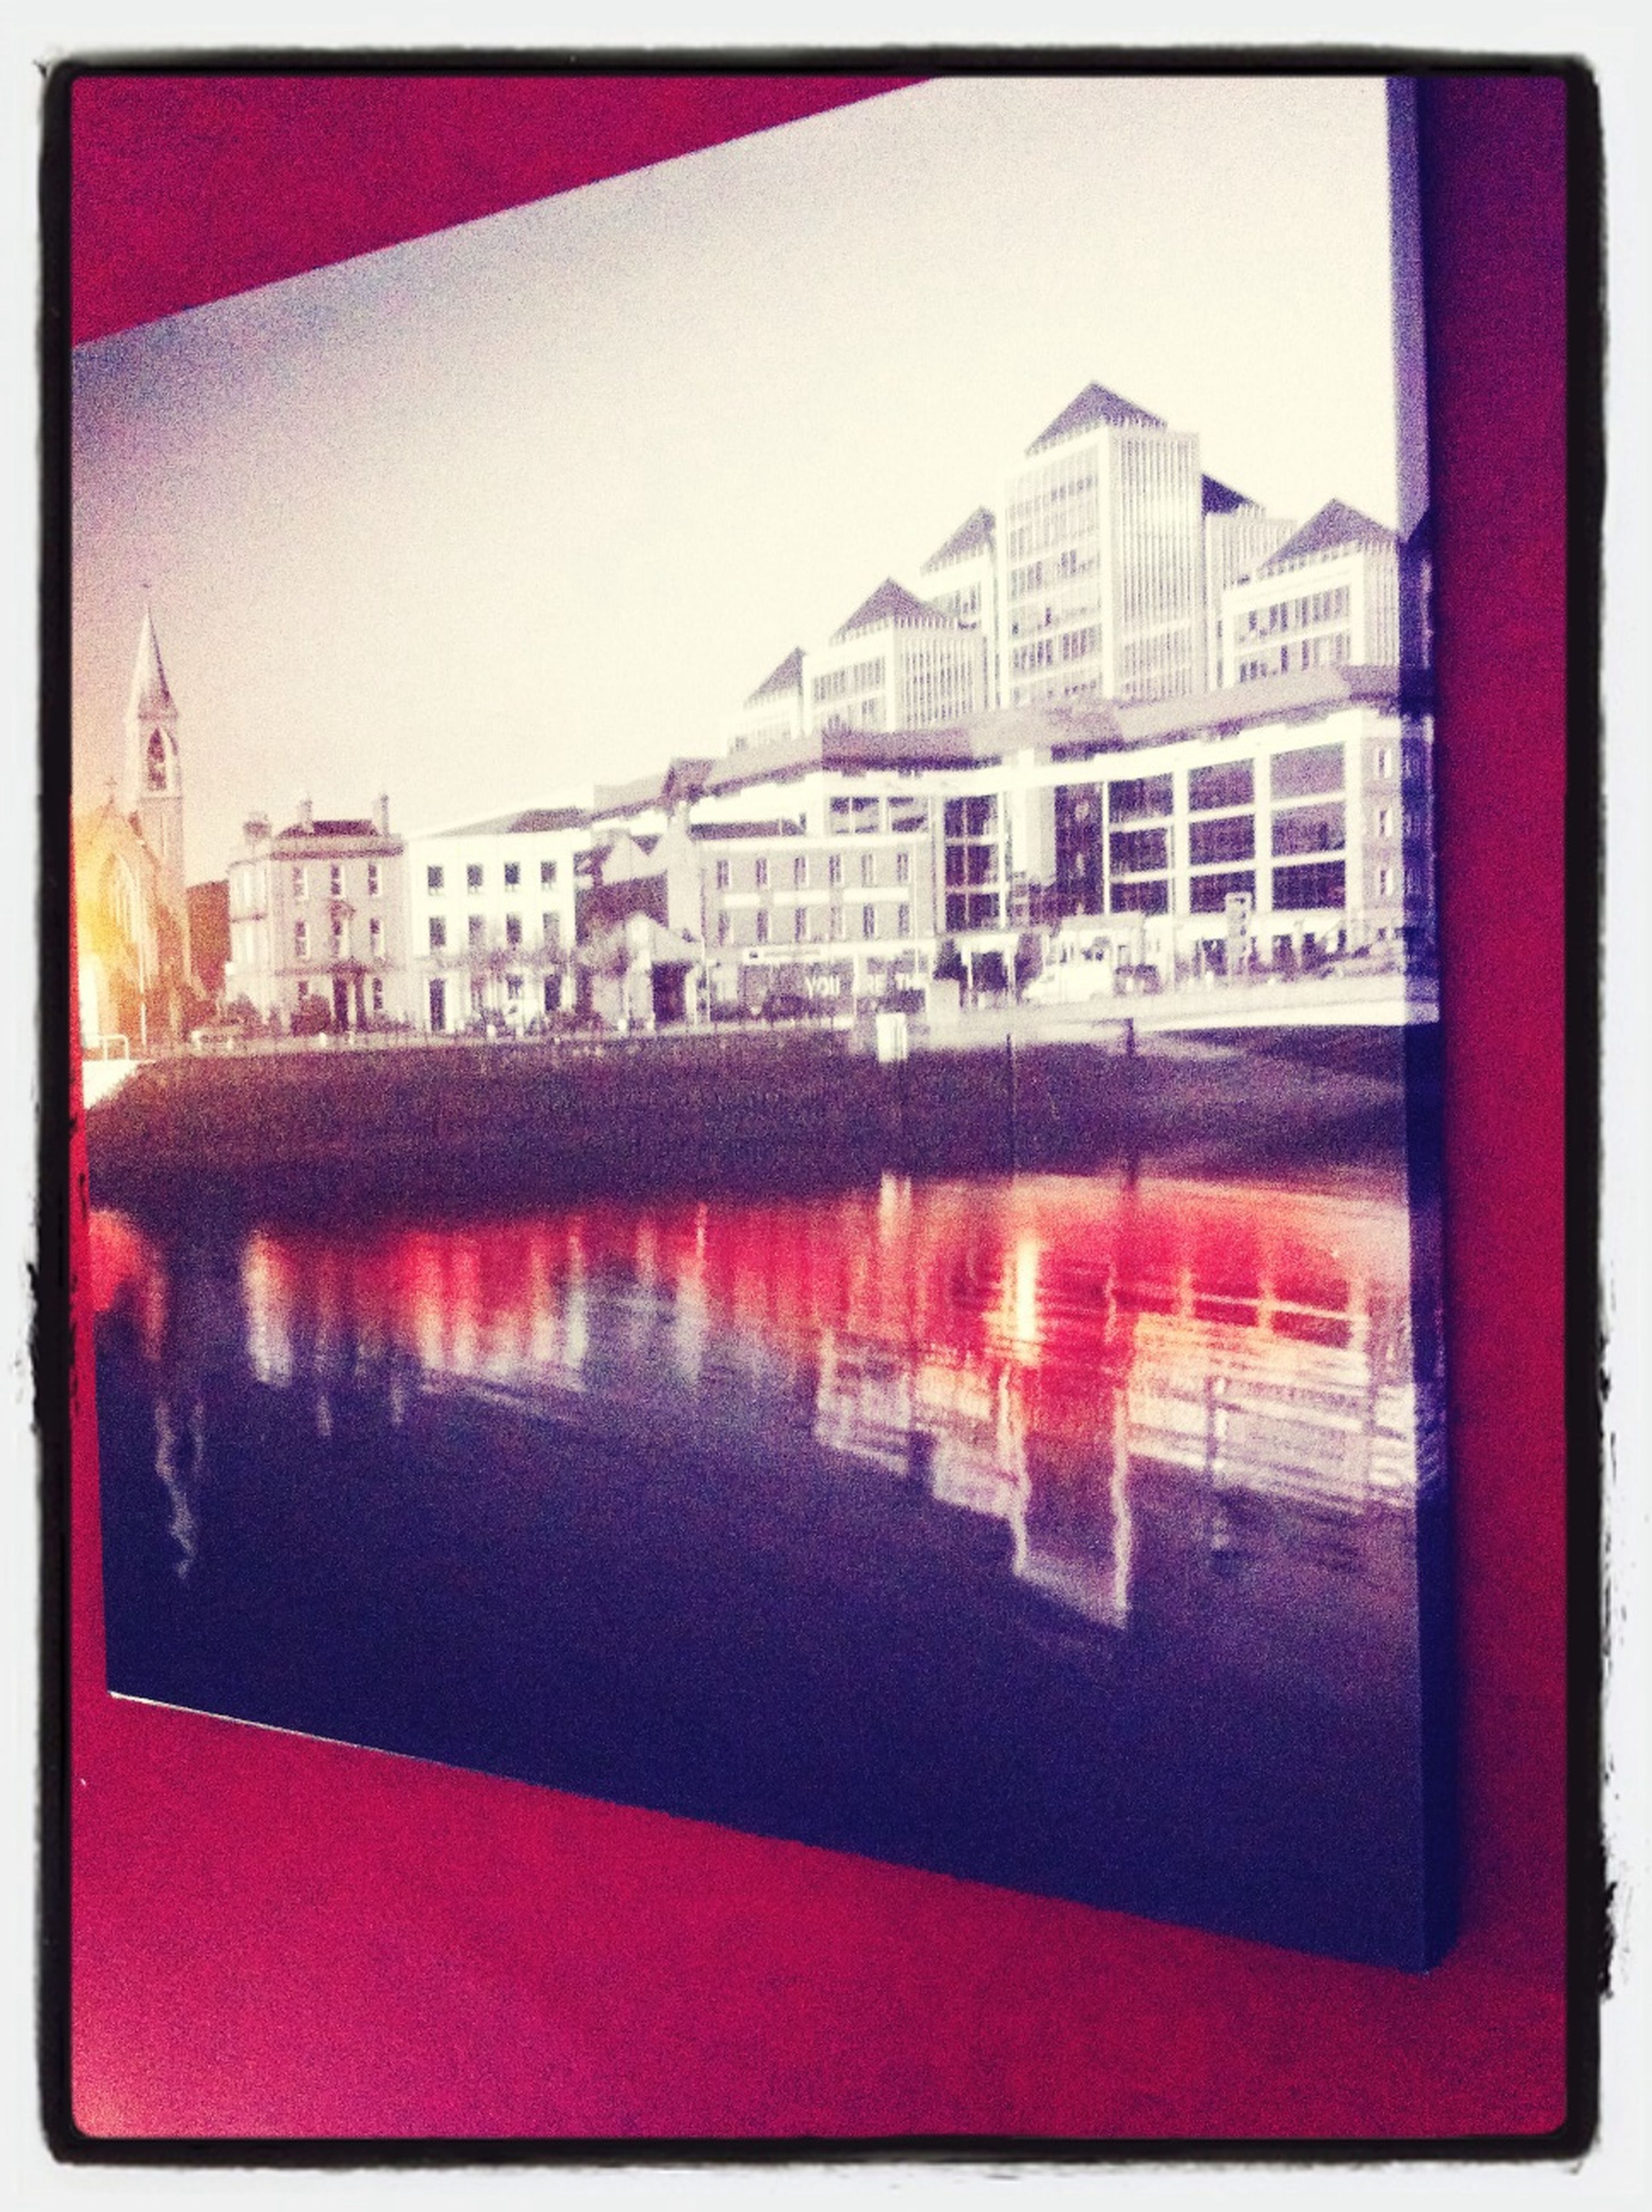 transfer print, indoors, auto post production filter, architecture, built structure, window, red, glass - material, building exterior, high angle view, no people, pink color, close-up, day, reflection, pattern, table, city, transparent, wall - building feature